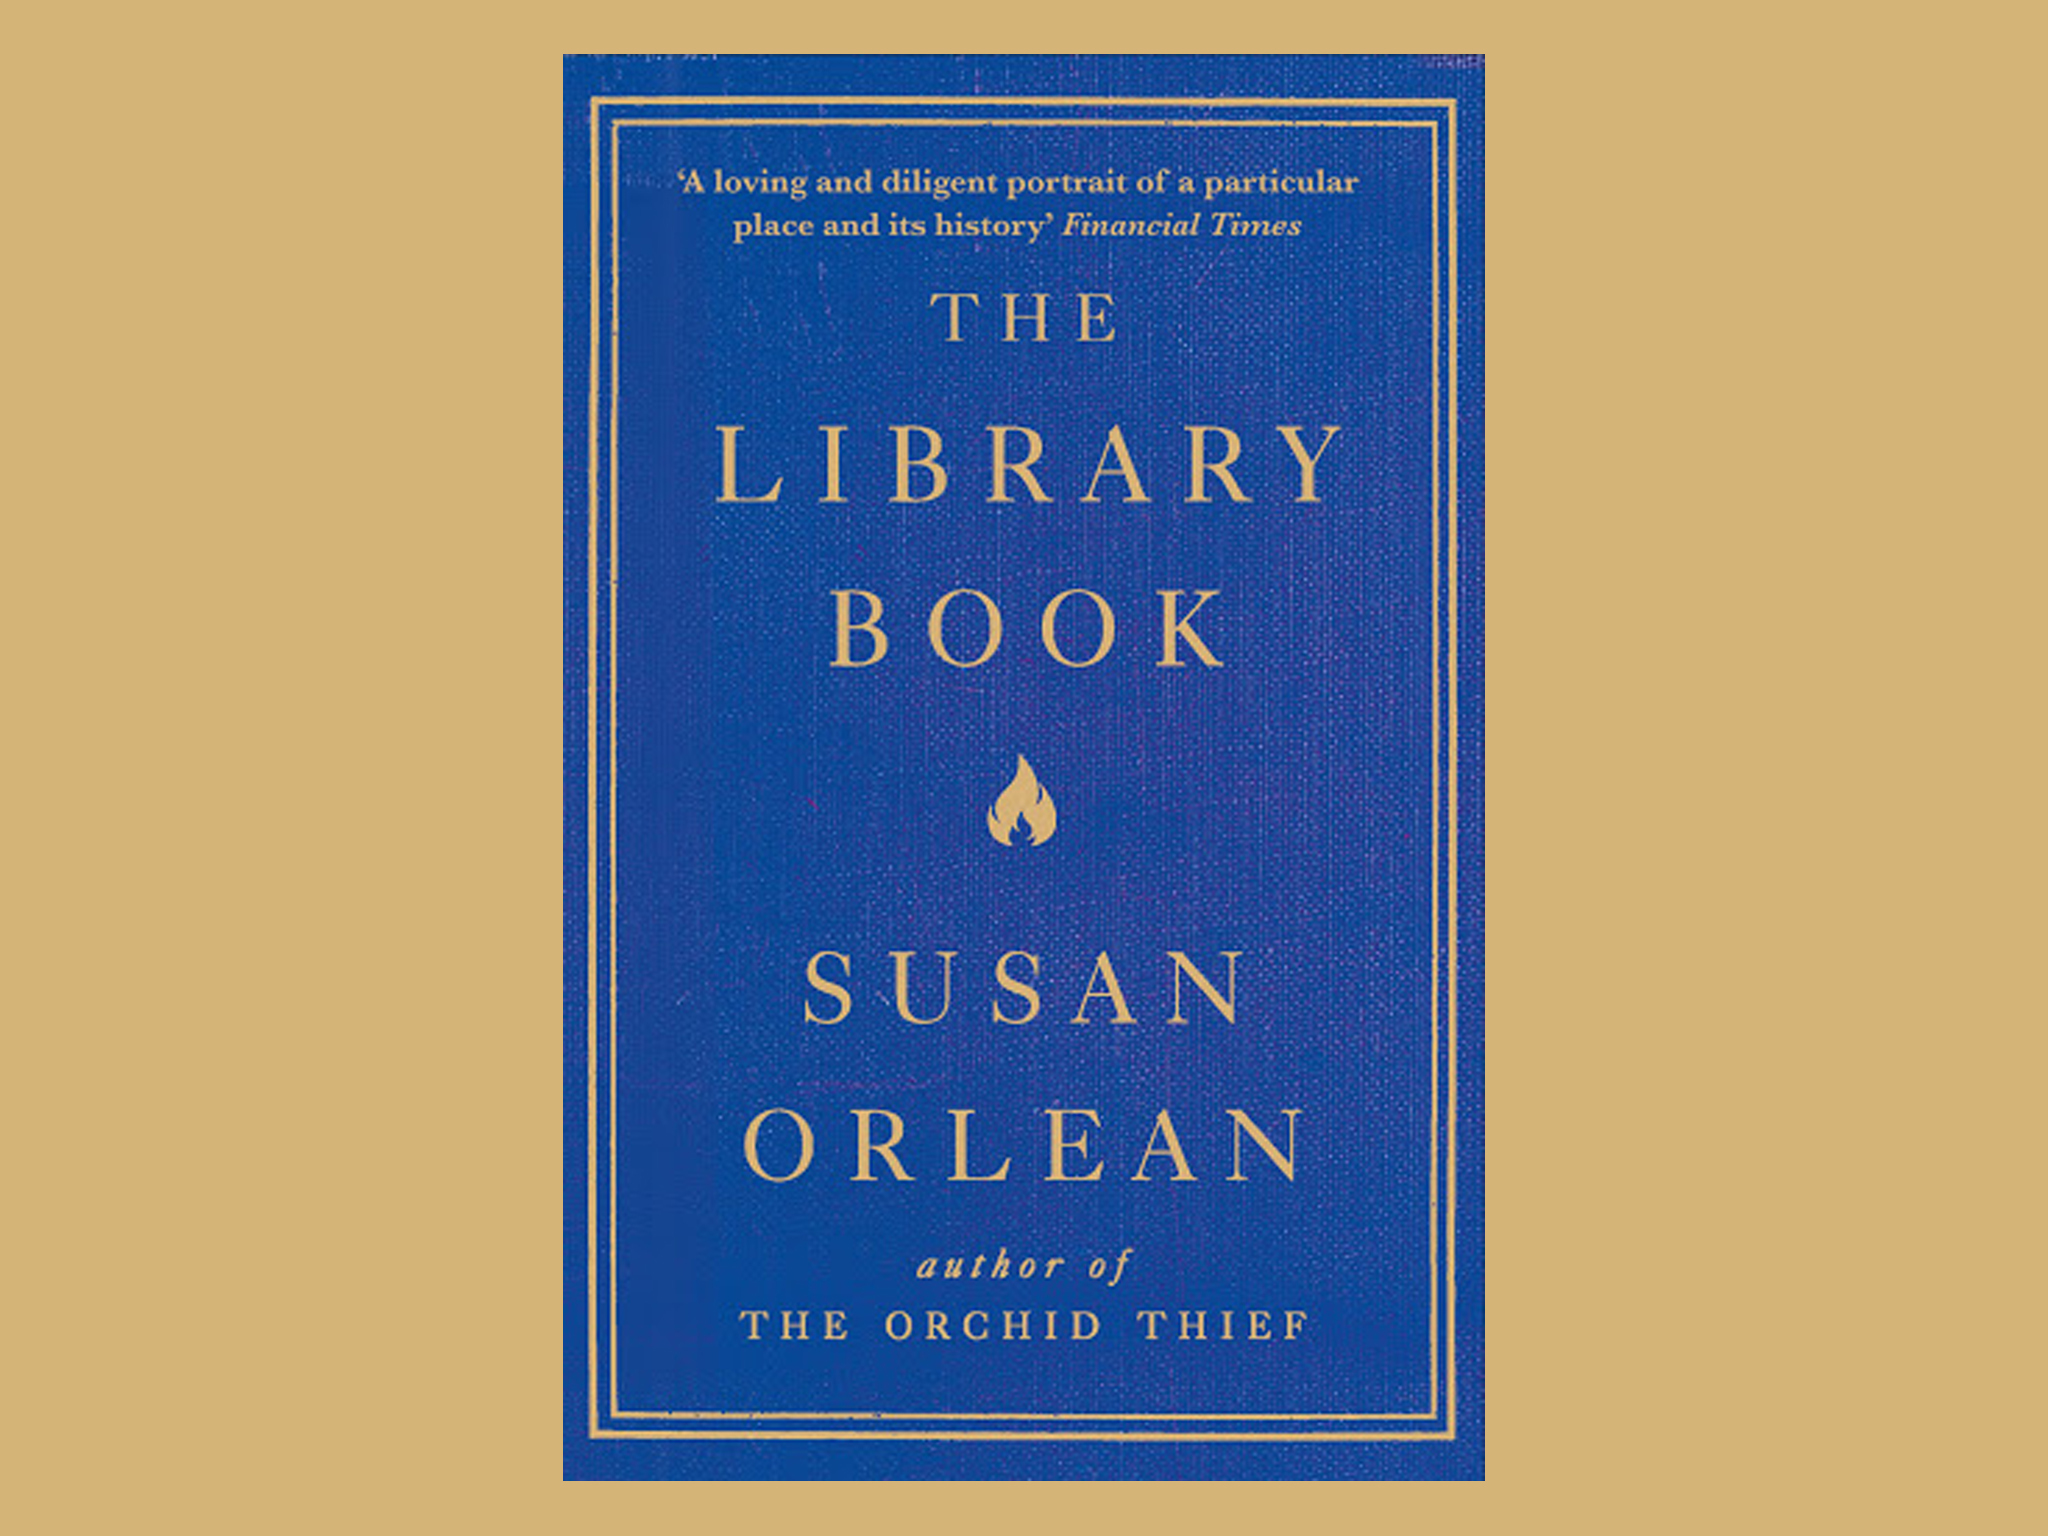 Best books: 'The Library Book' by Susan Orlean